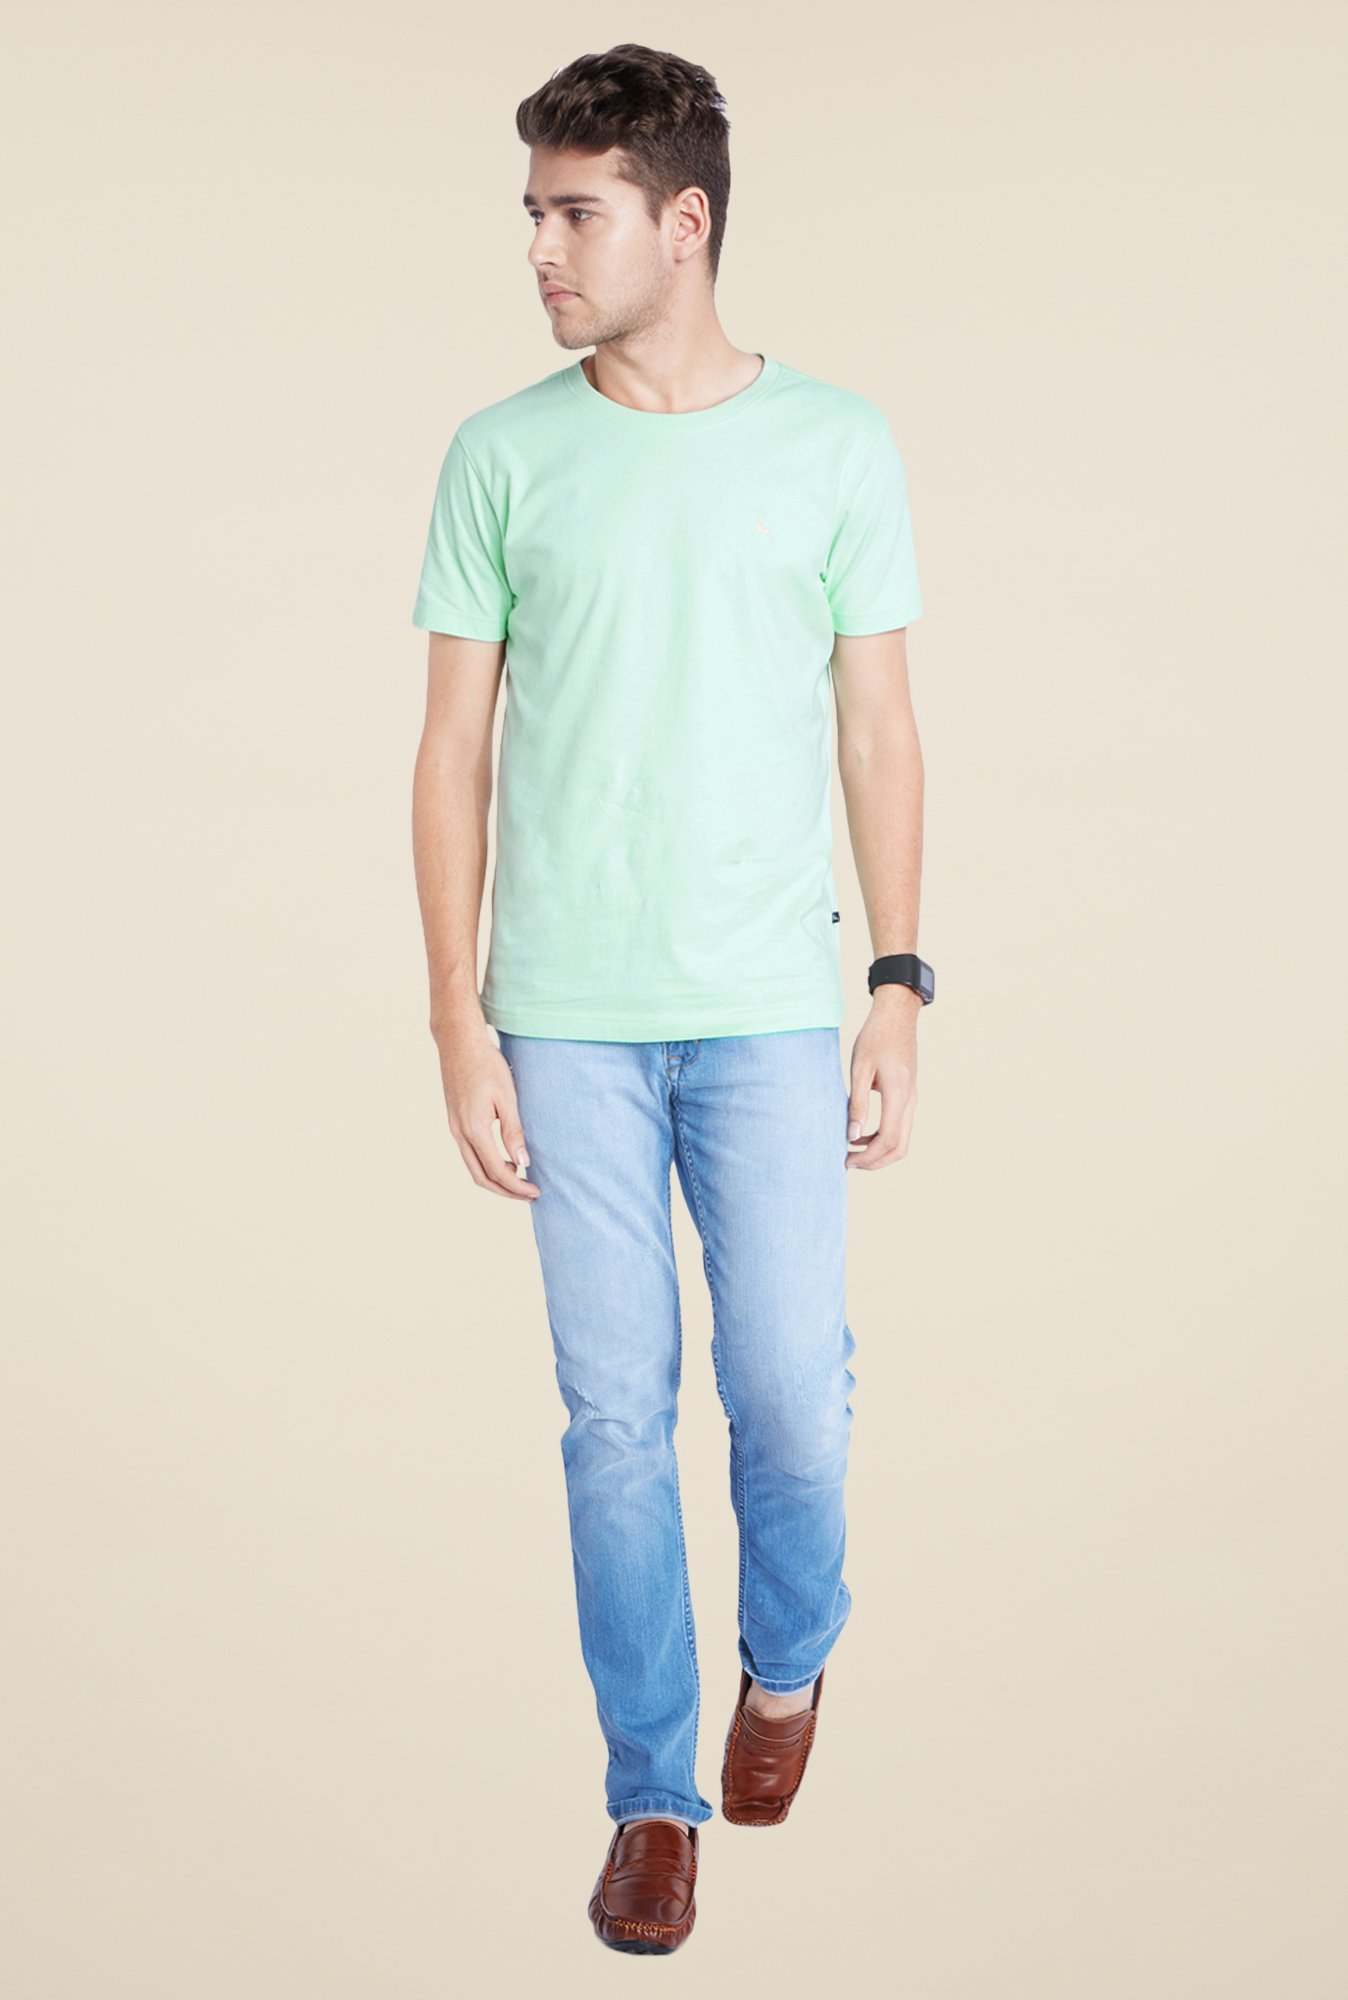 Parx Green Solid T Shirt